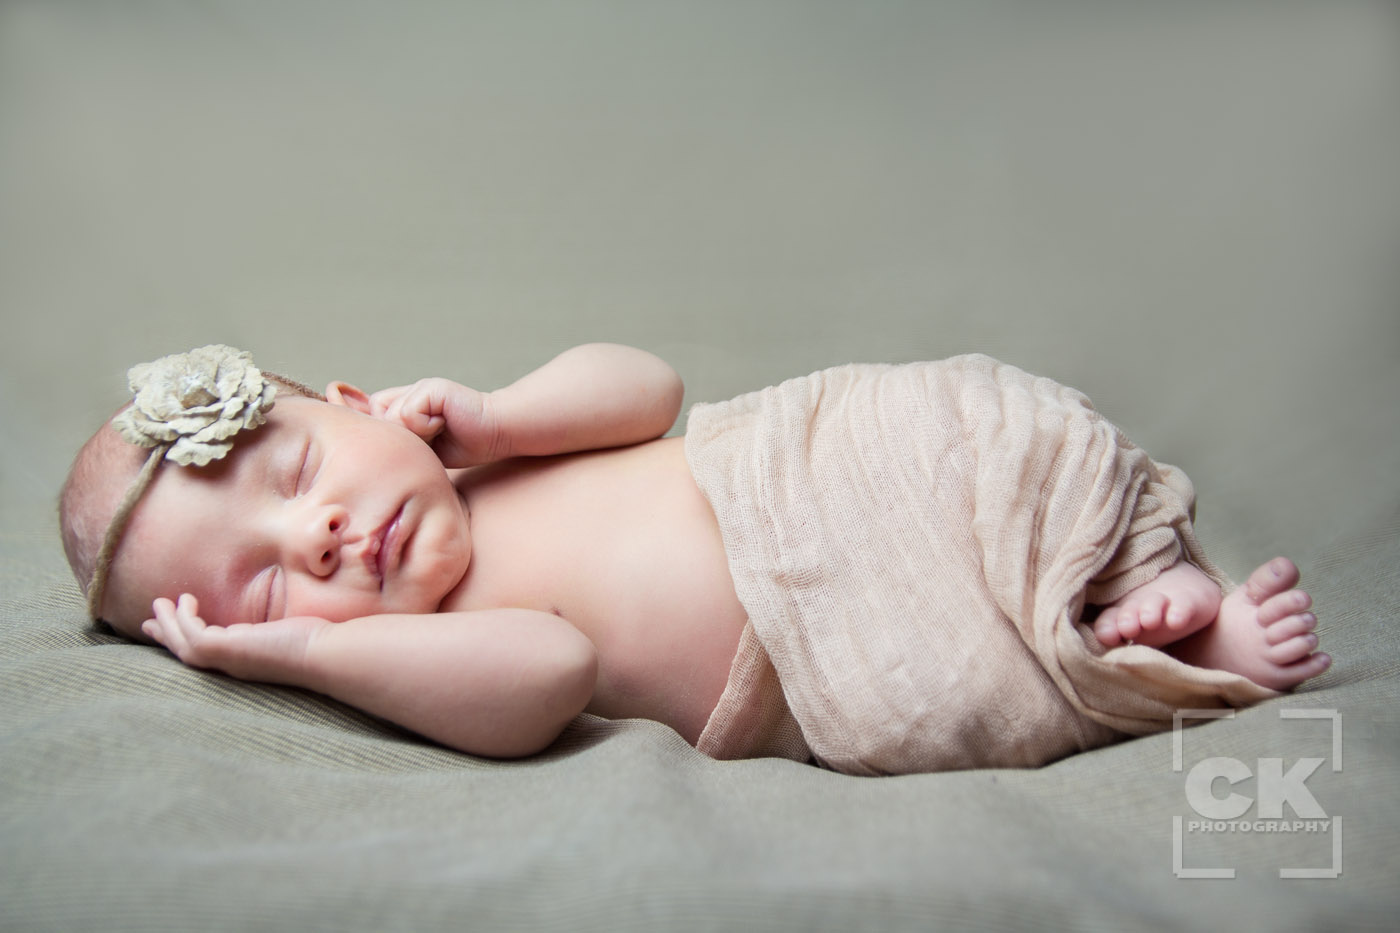 Chris Kryzanek Photography - newborn wrapped with flower headband